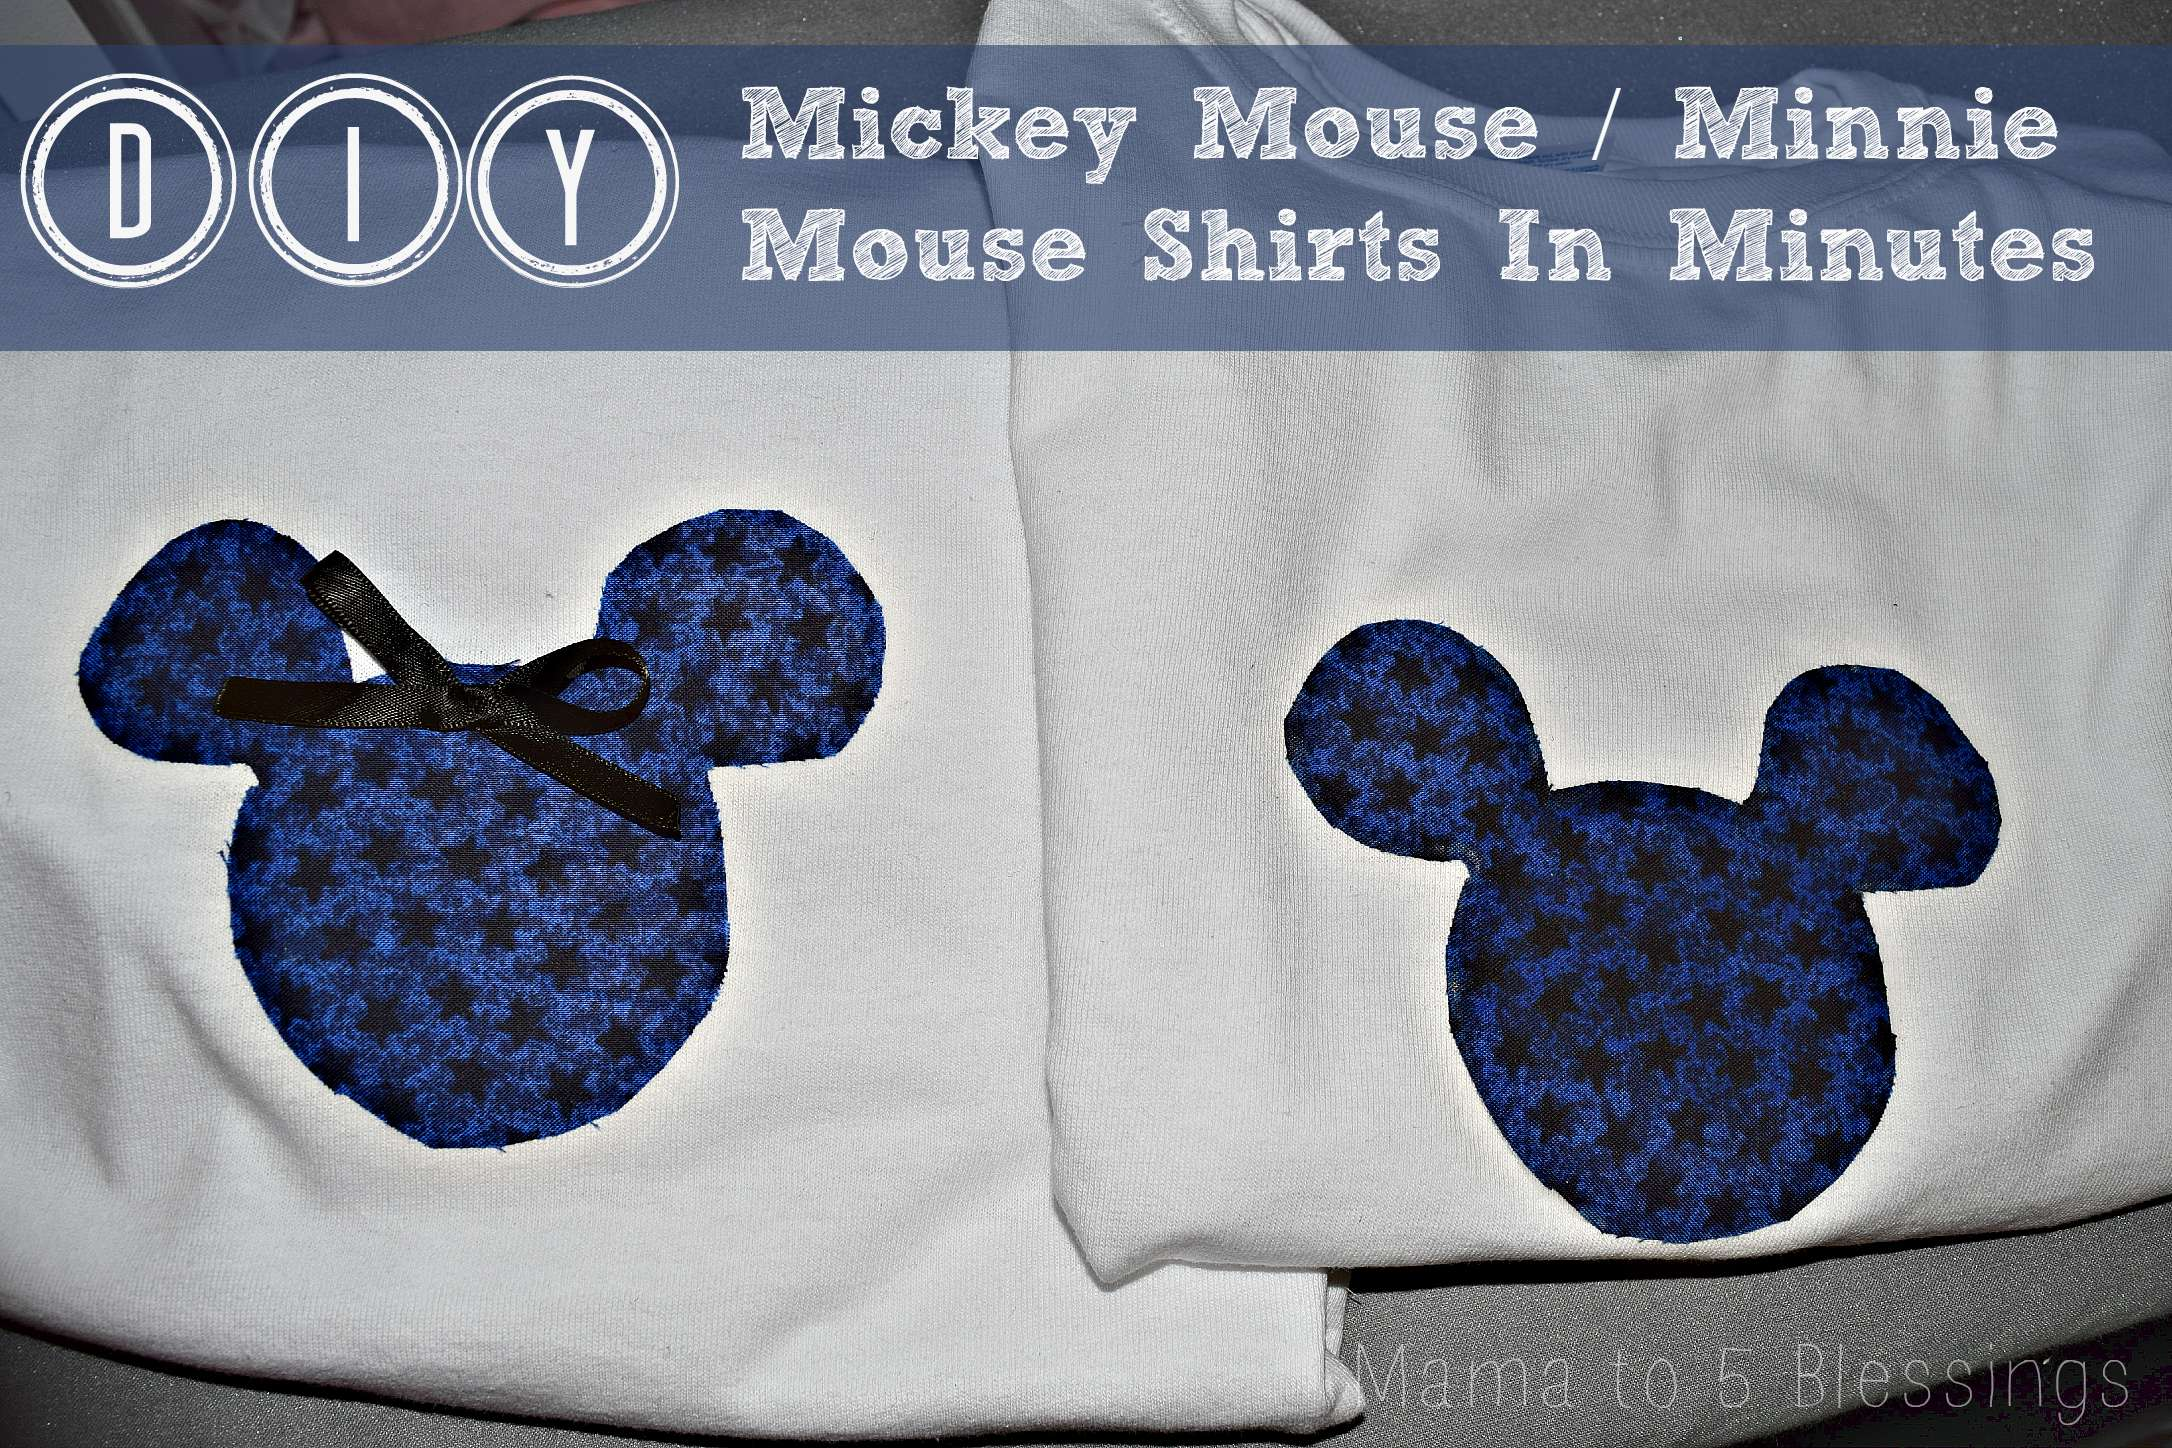 Mickey shirt buttons